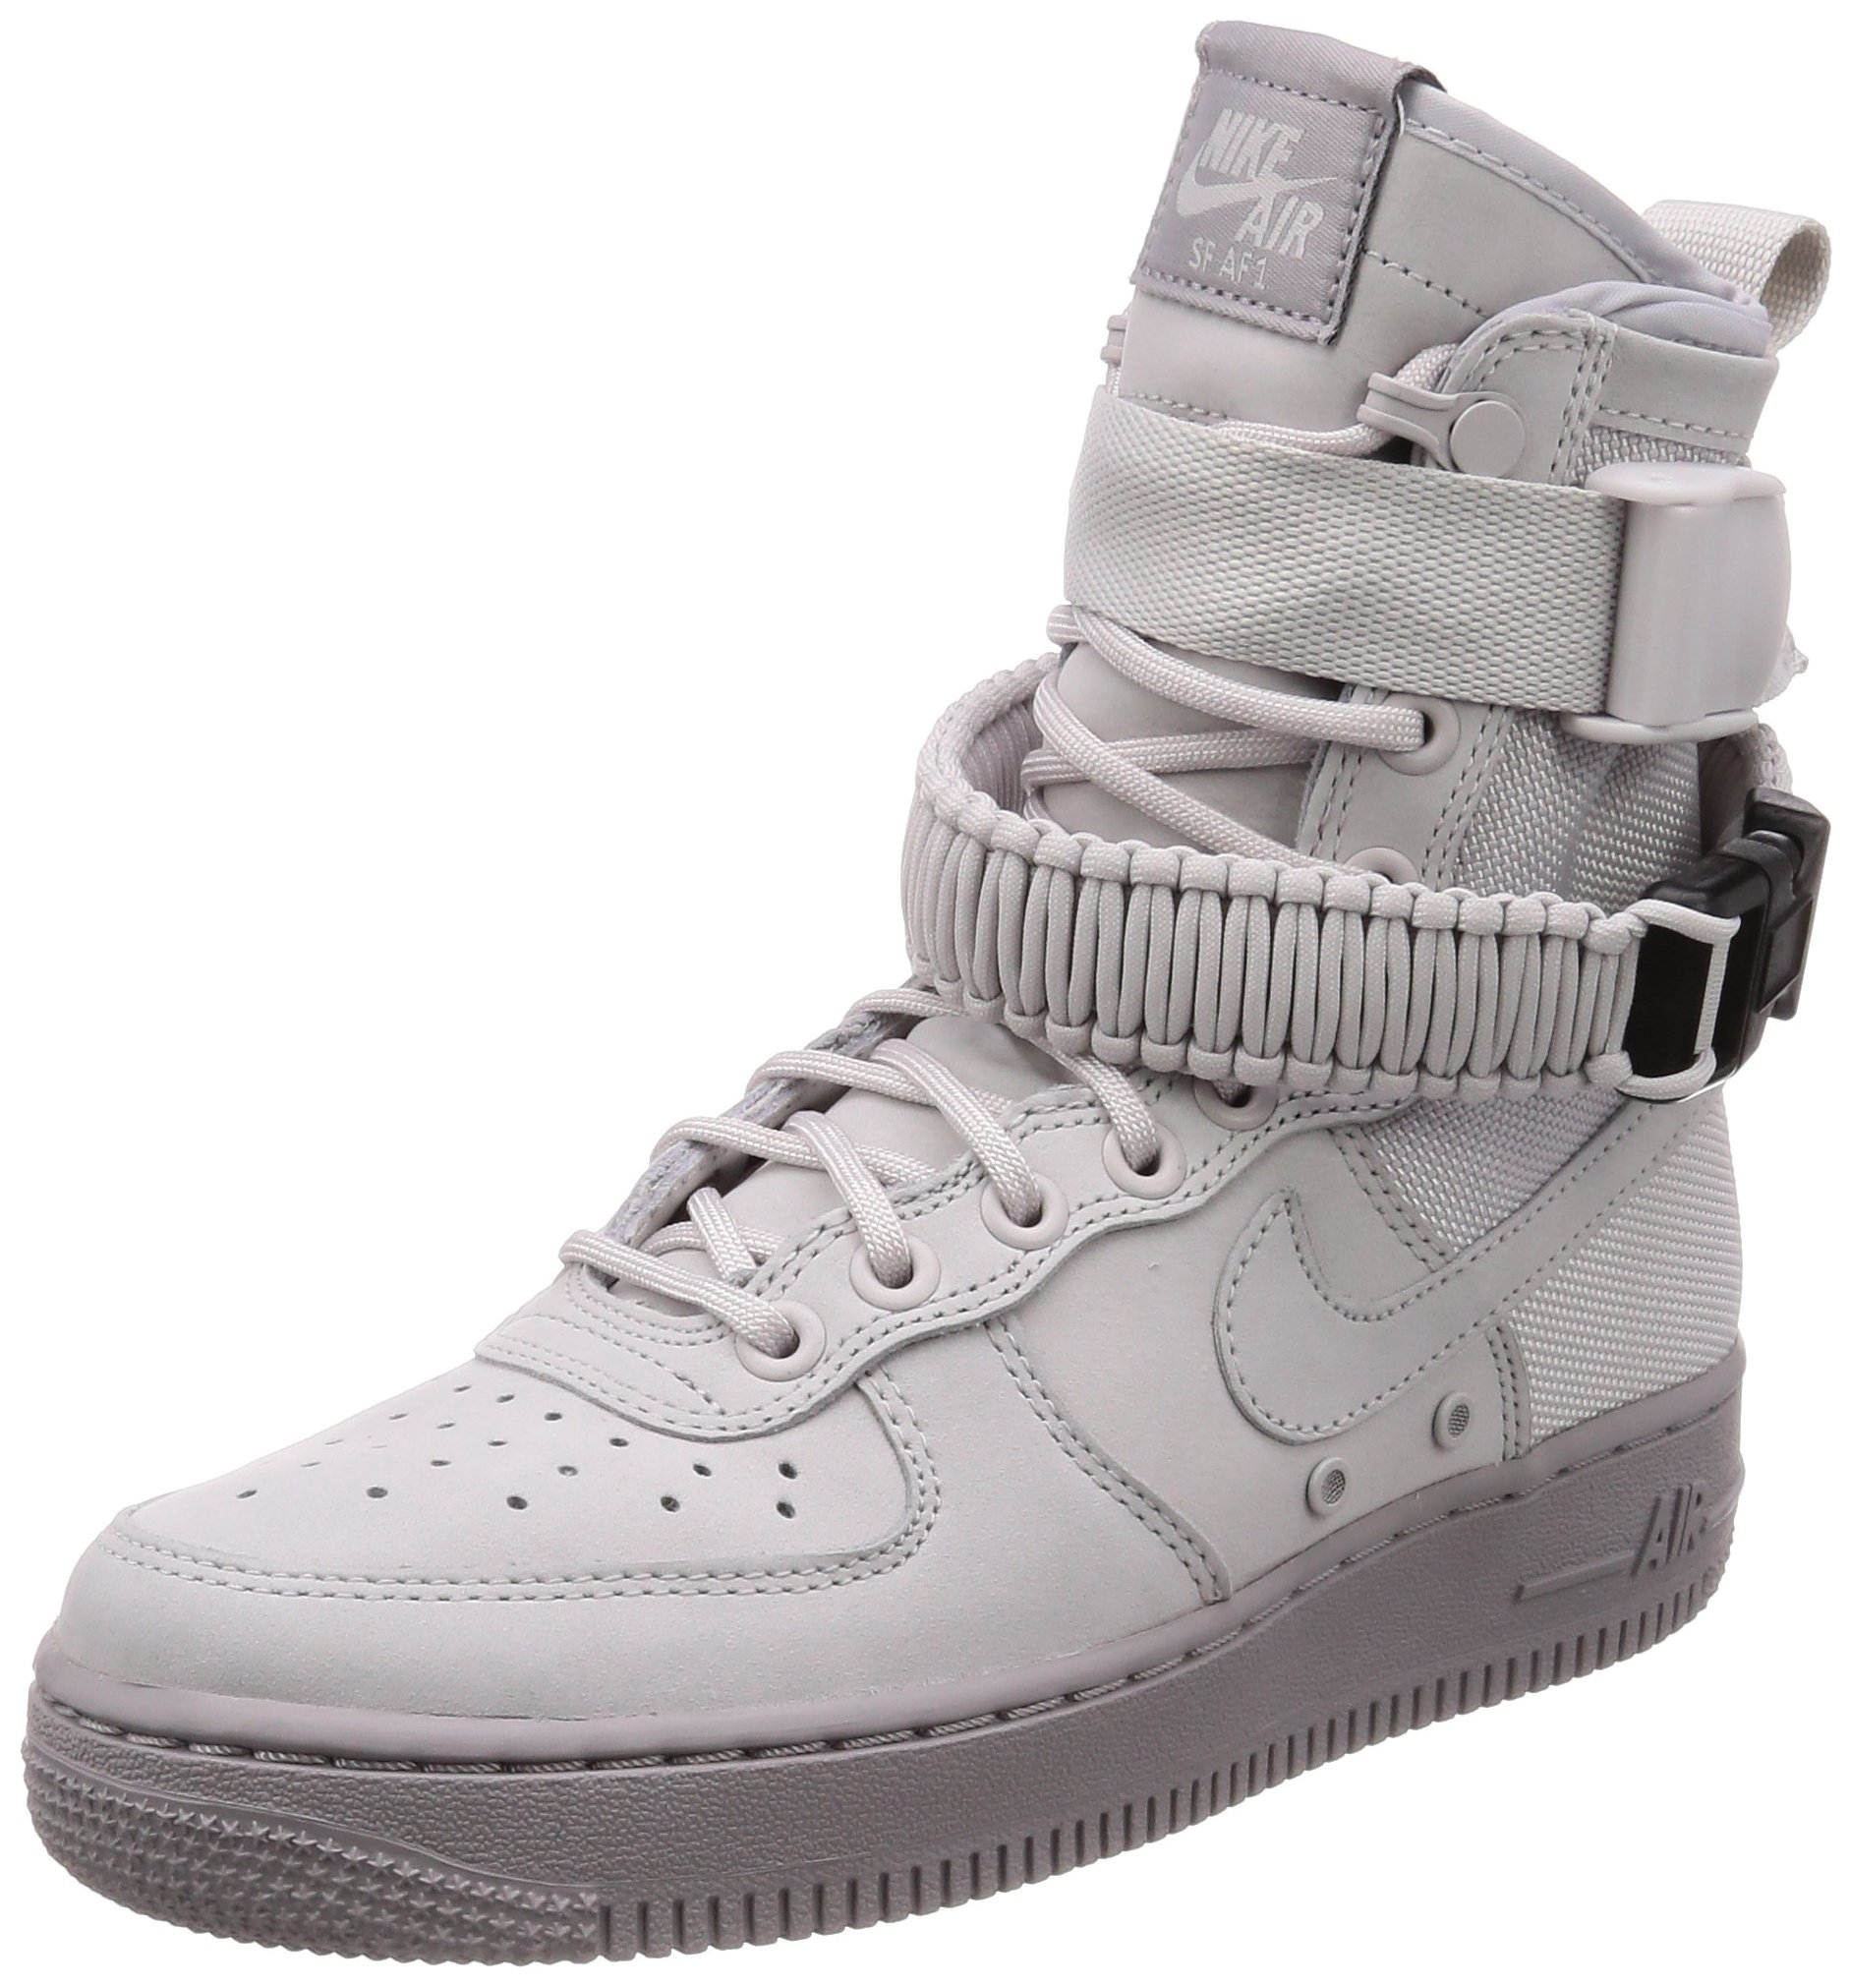 brand new dfa59 066c9 Nike Womens SF Air Force 1 Boots Vast Grey/Atmosphere Grey 857872-003 Size 7